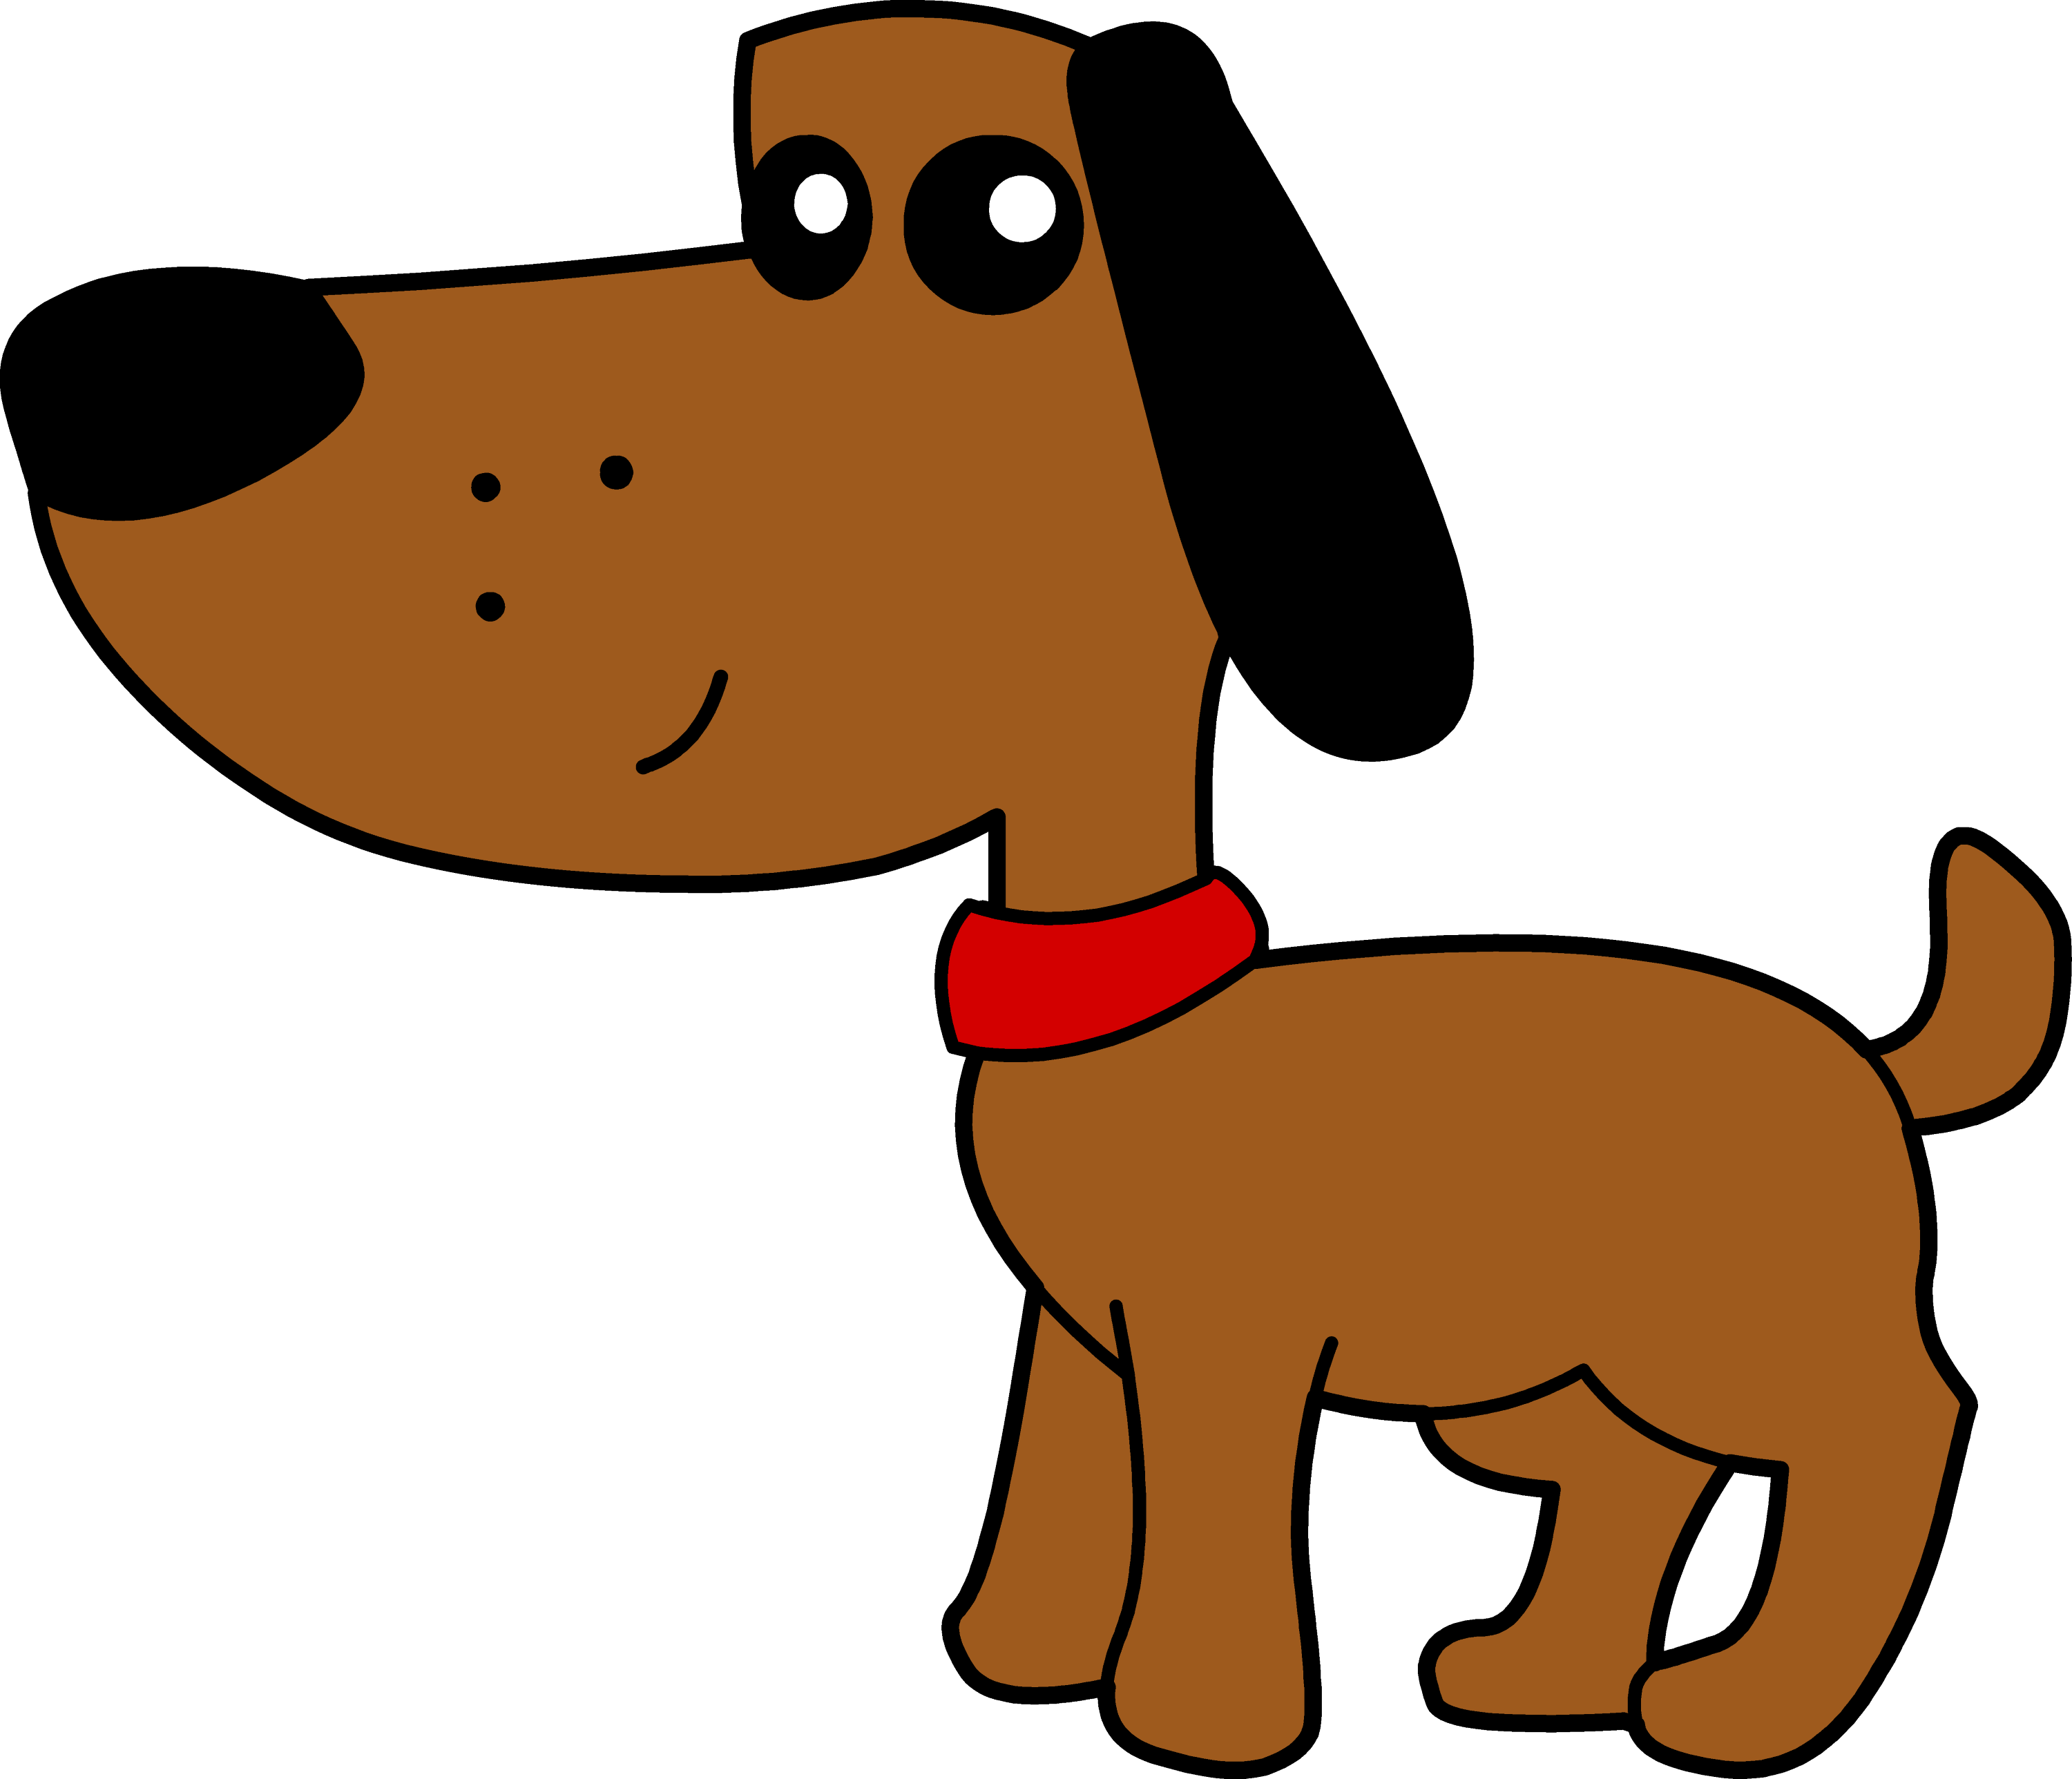 Cute Brown Dog With Red Collar - Free Clip Art